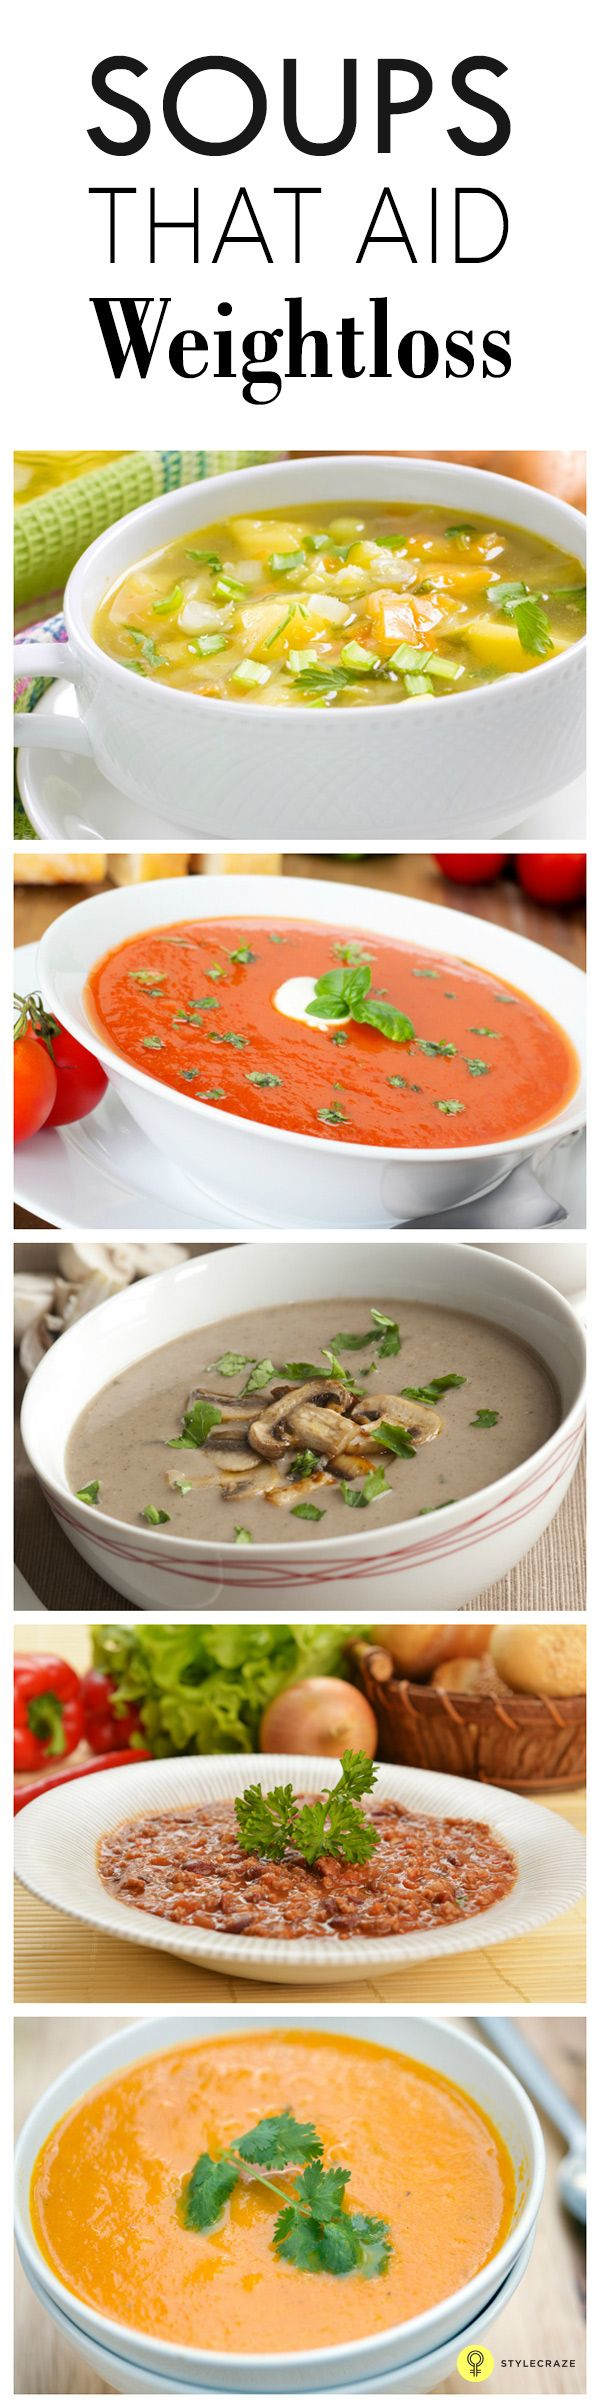 A lot of people today focus on weight loss. One of the best ways is a liquid diet. Here are some soups for weight loss that will help you those few ...